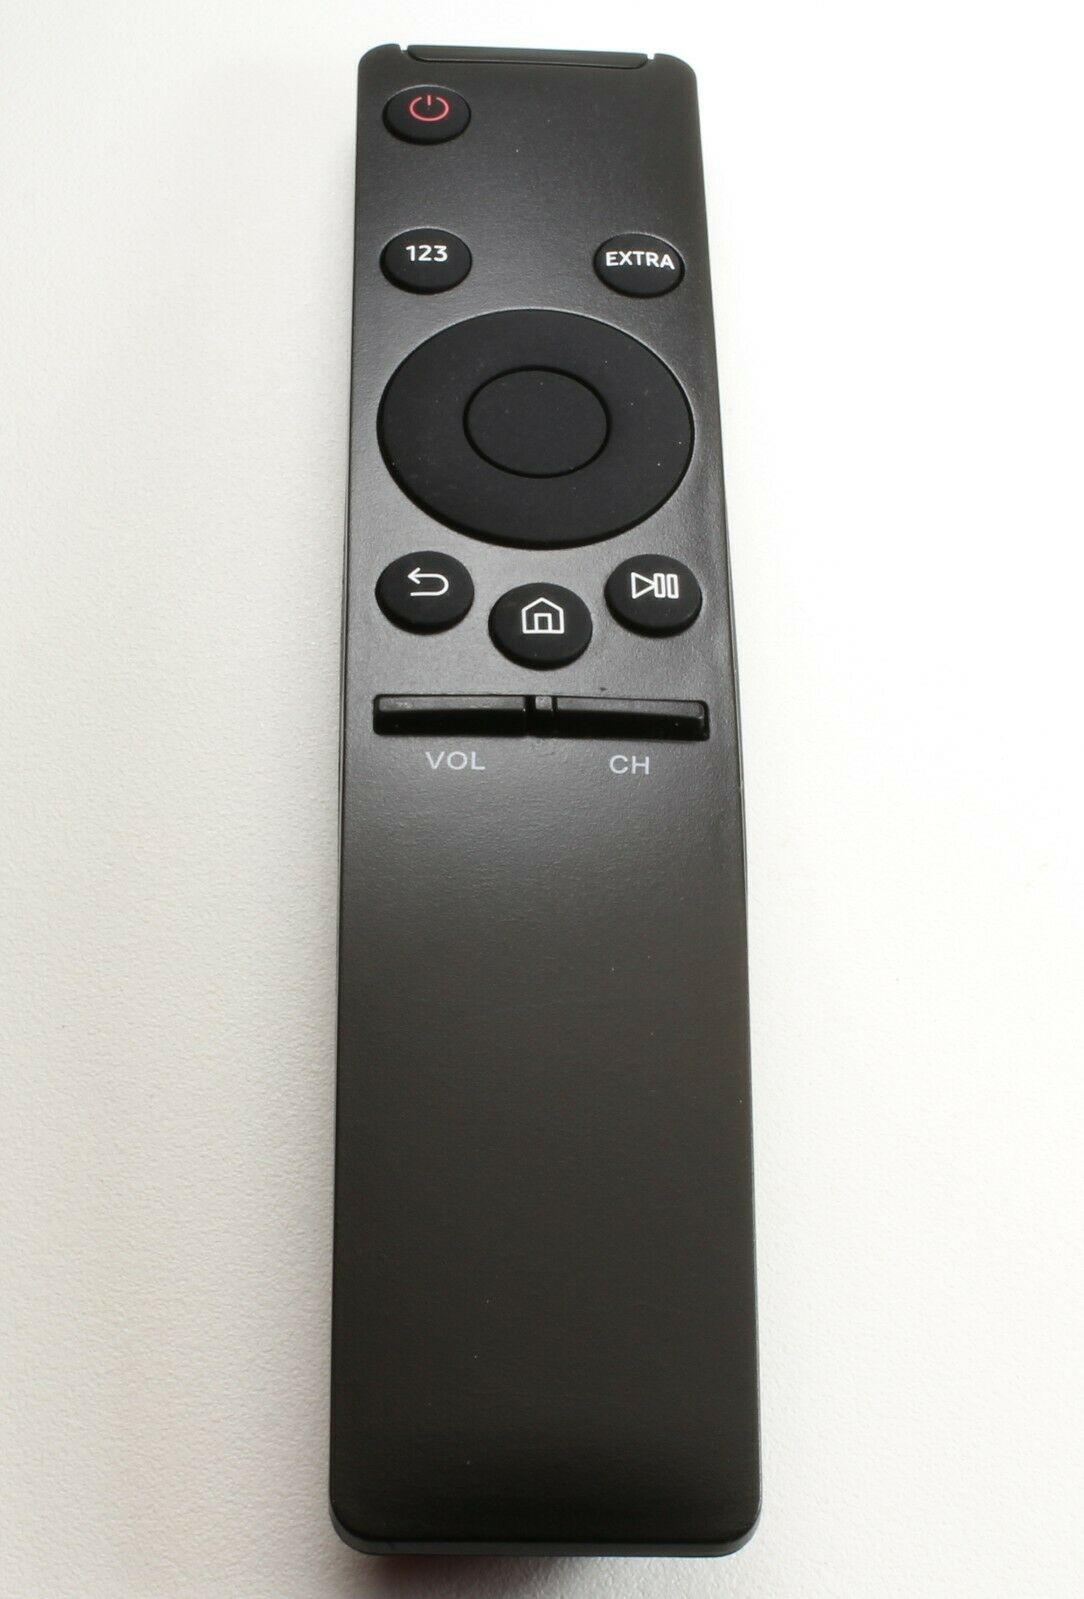 NEW Replacement BN59-01298H Remote Control for Samsung Smart TV LED 4K UHD